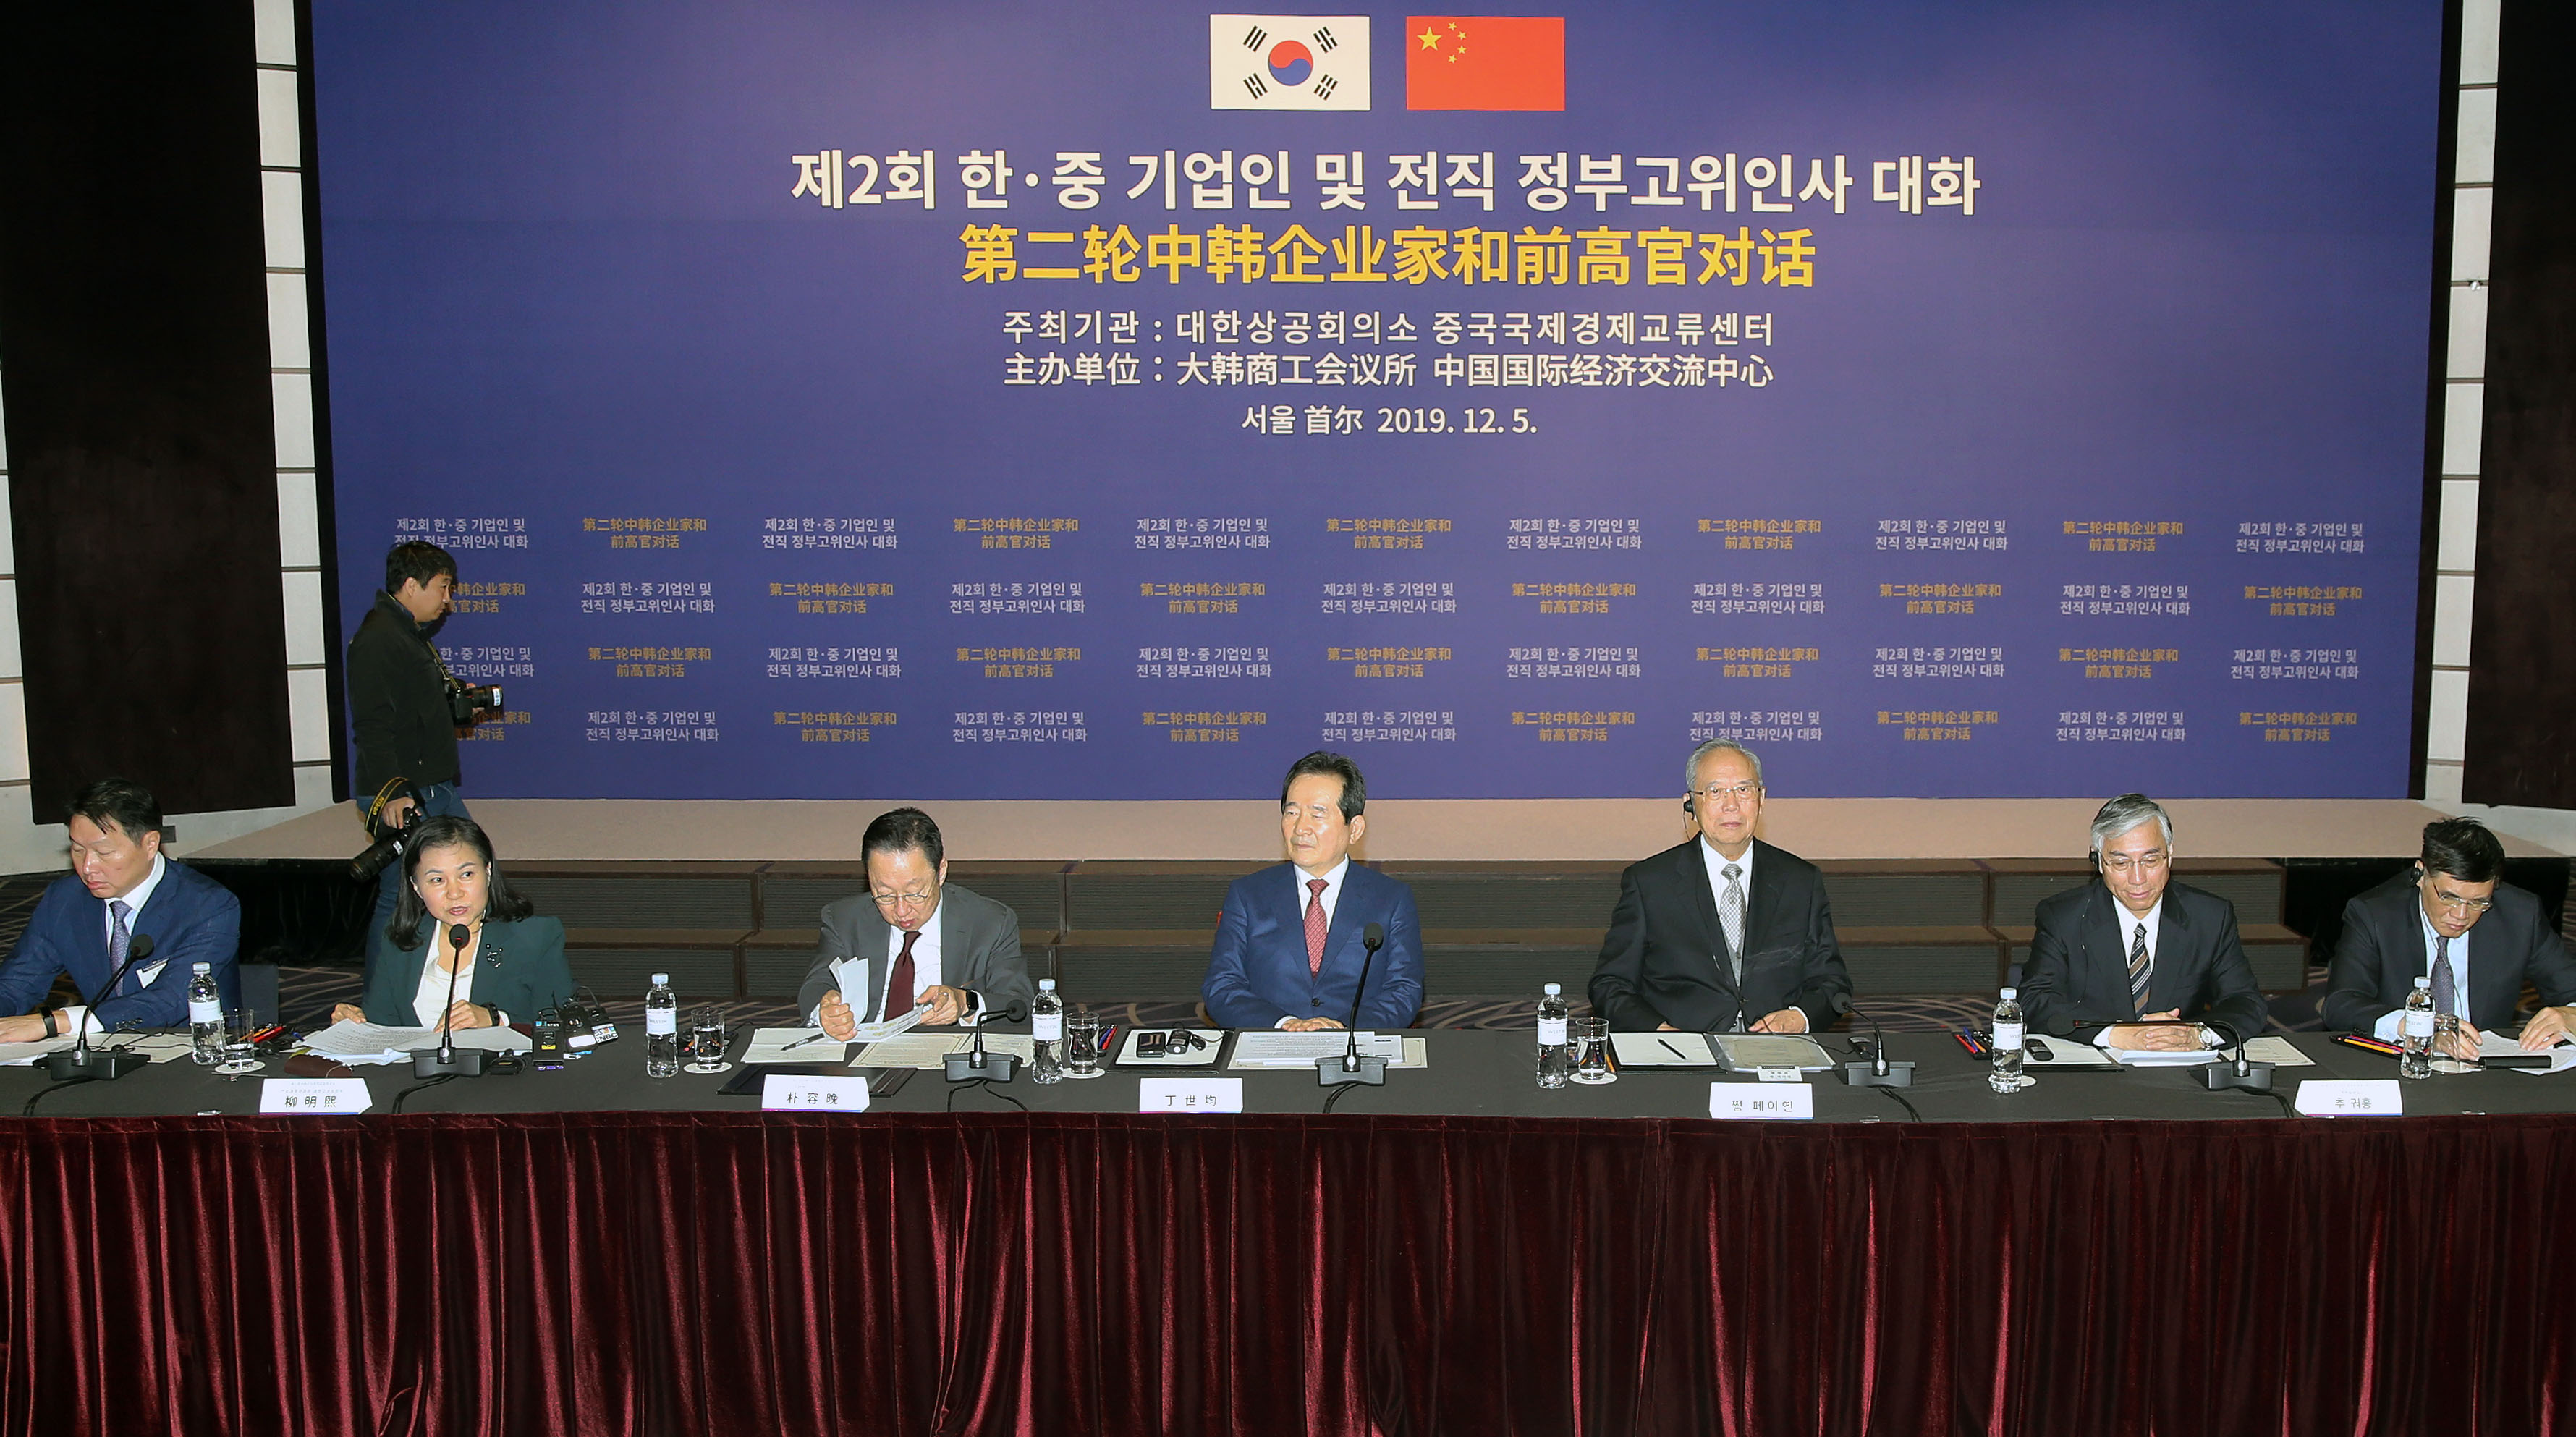 Trade Minister Yoo delivers remarks at 2nd Korea-China Business Leaders and Former Government Officials Dialogue